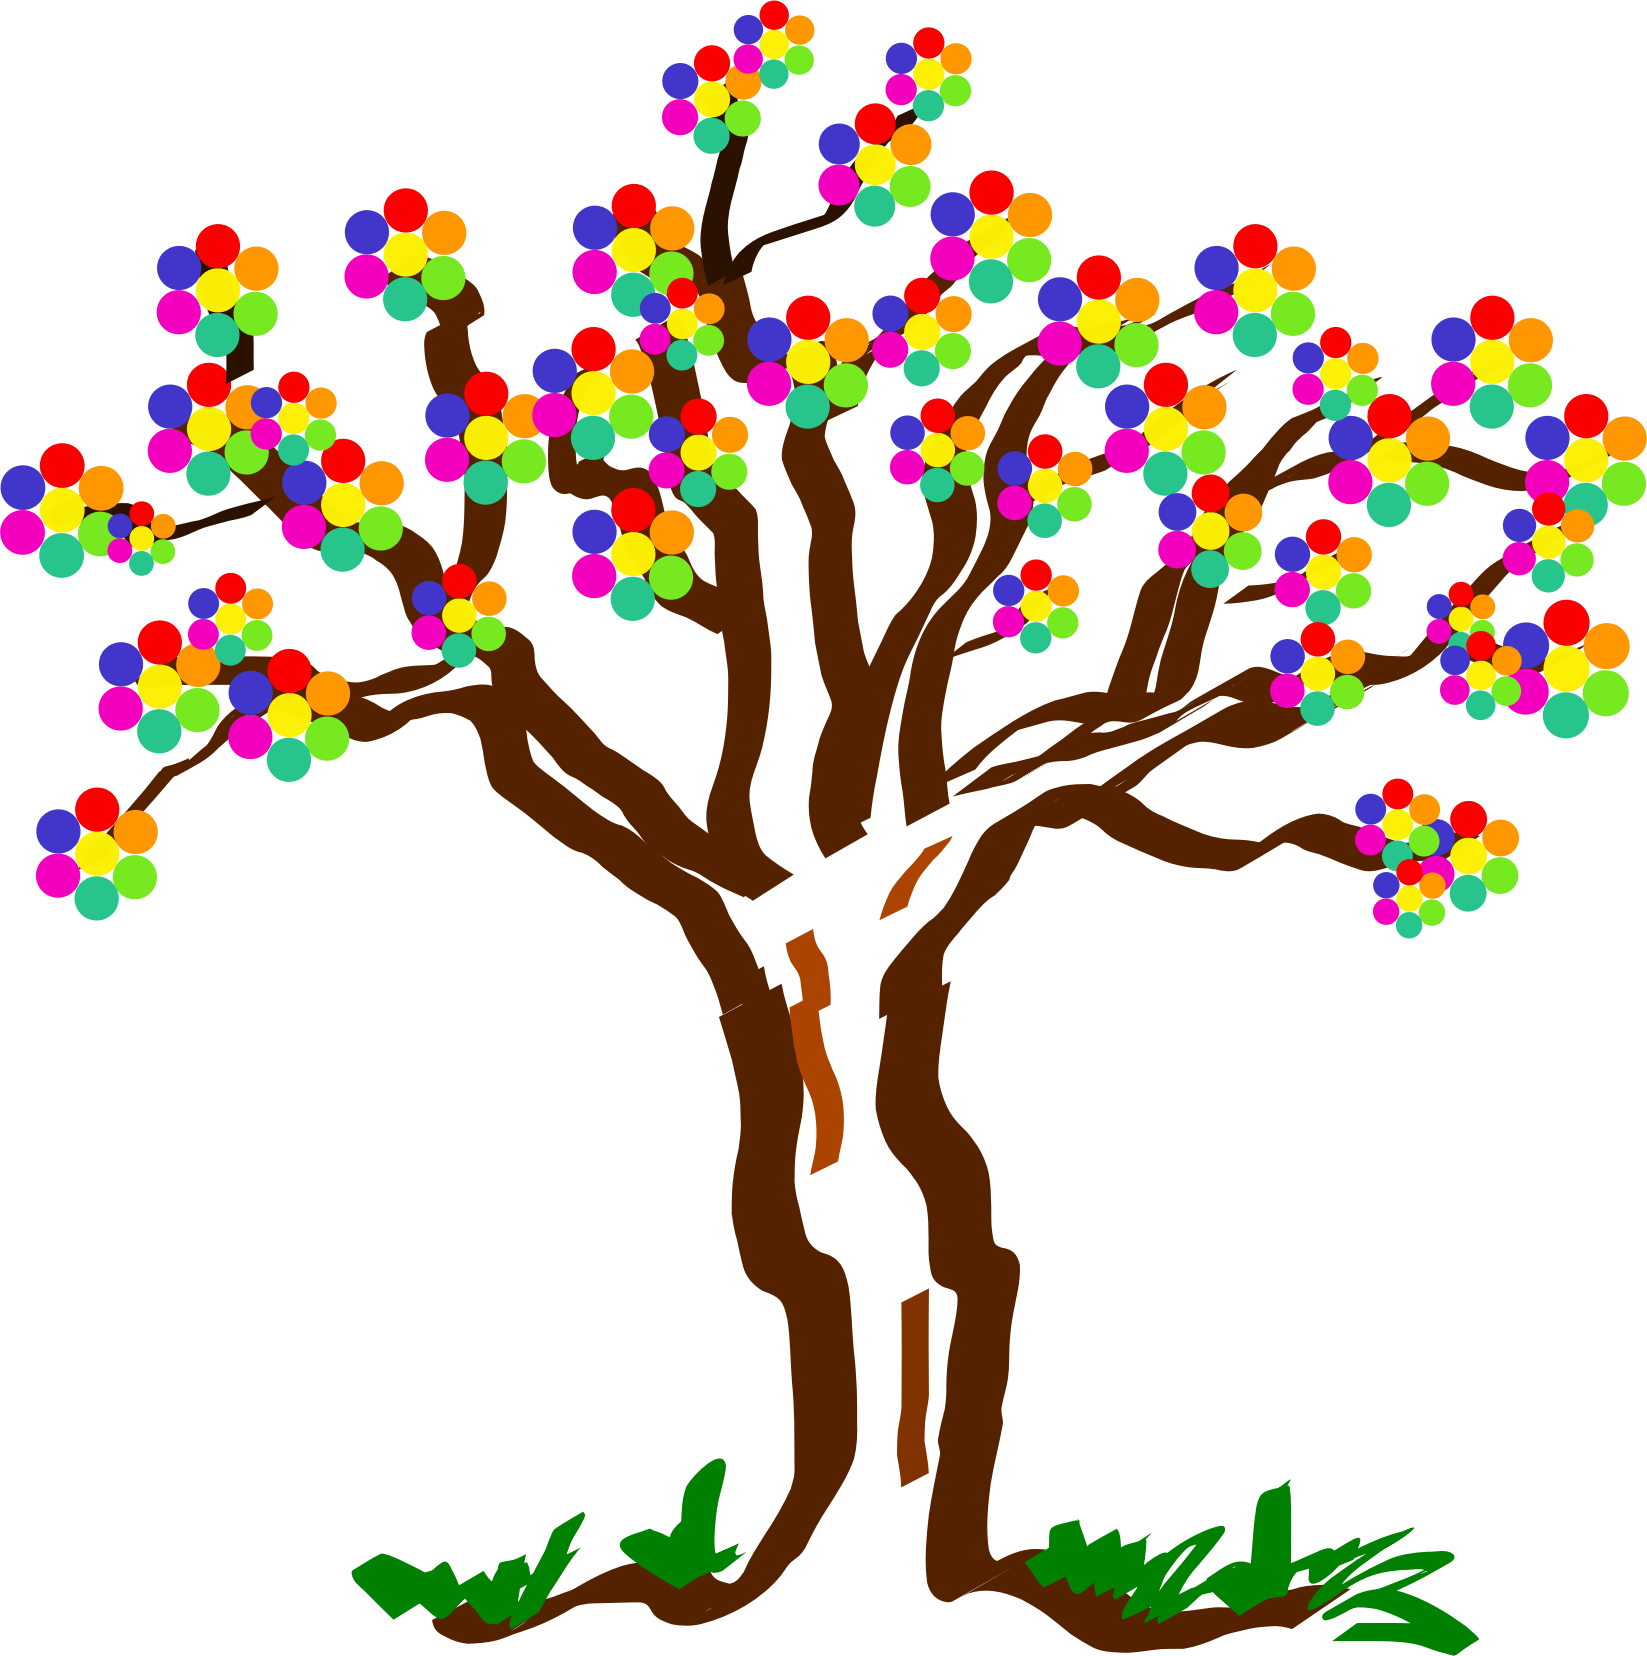 Aiflowers big image png. Clipart birthday tree